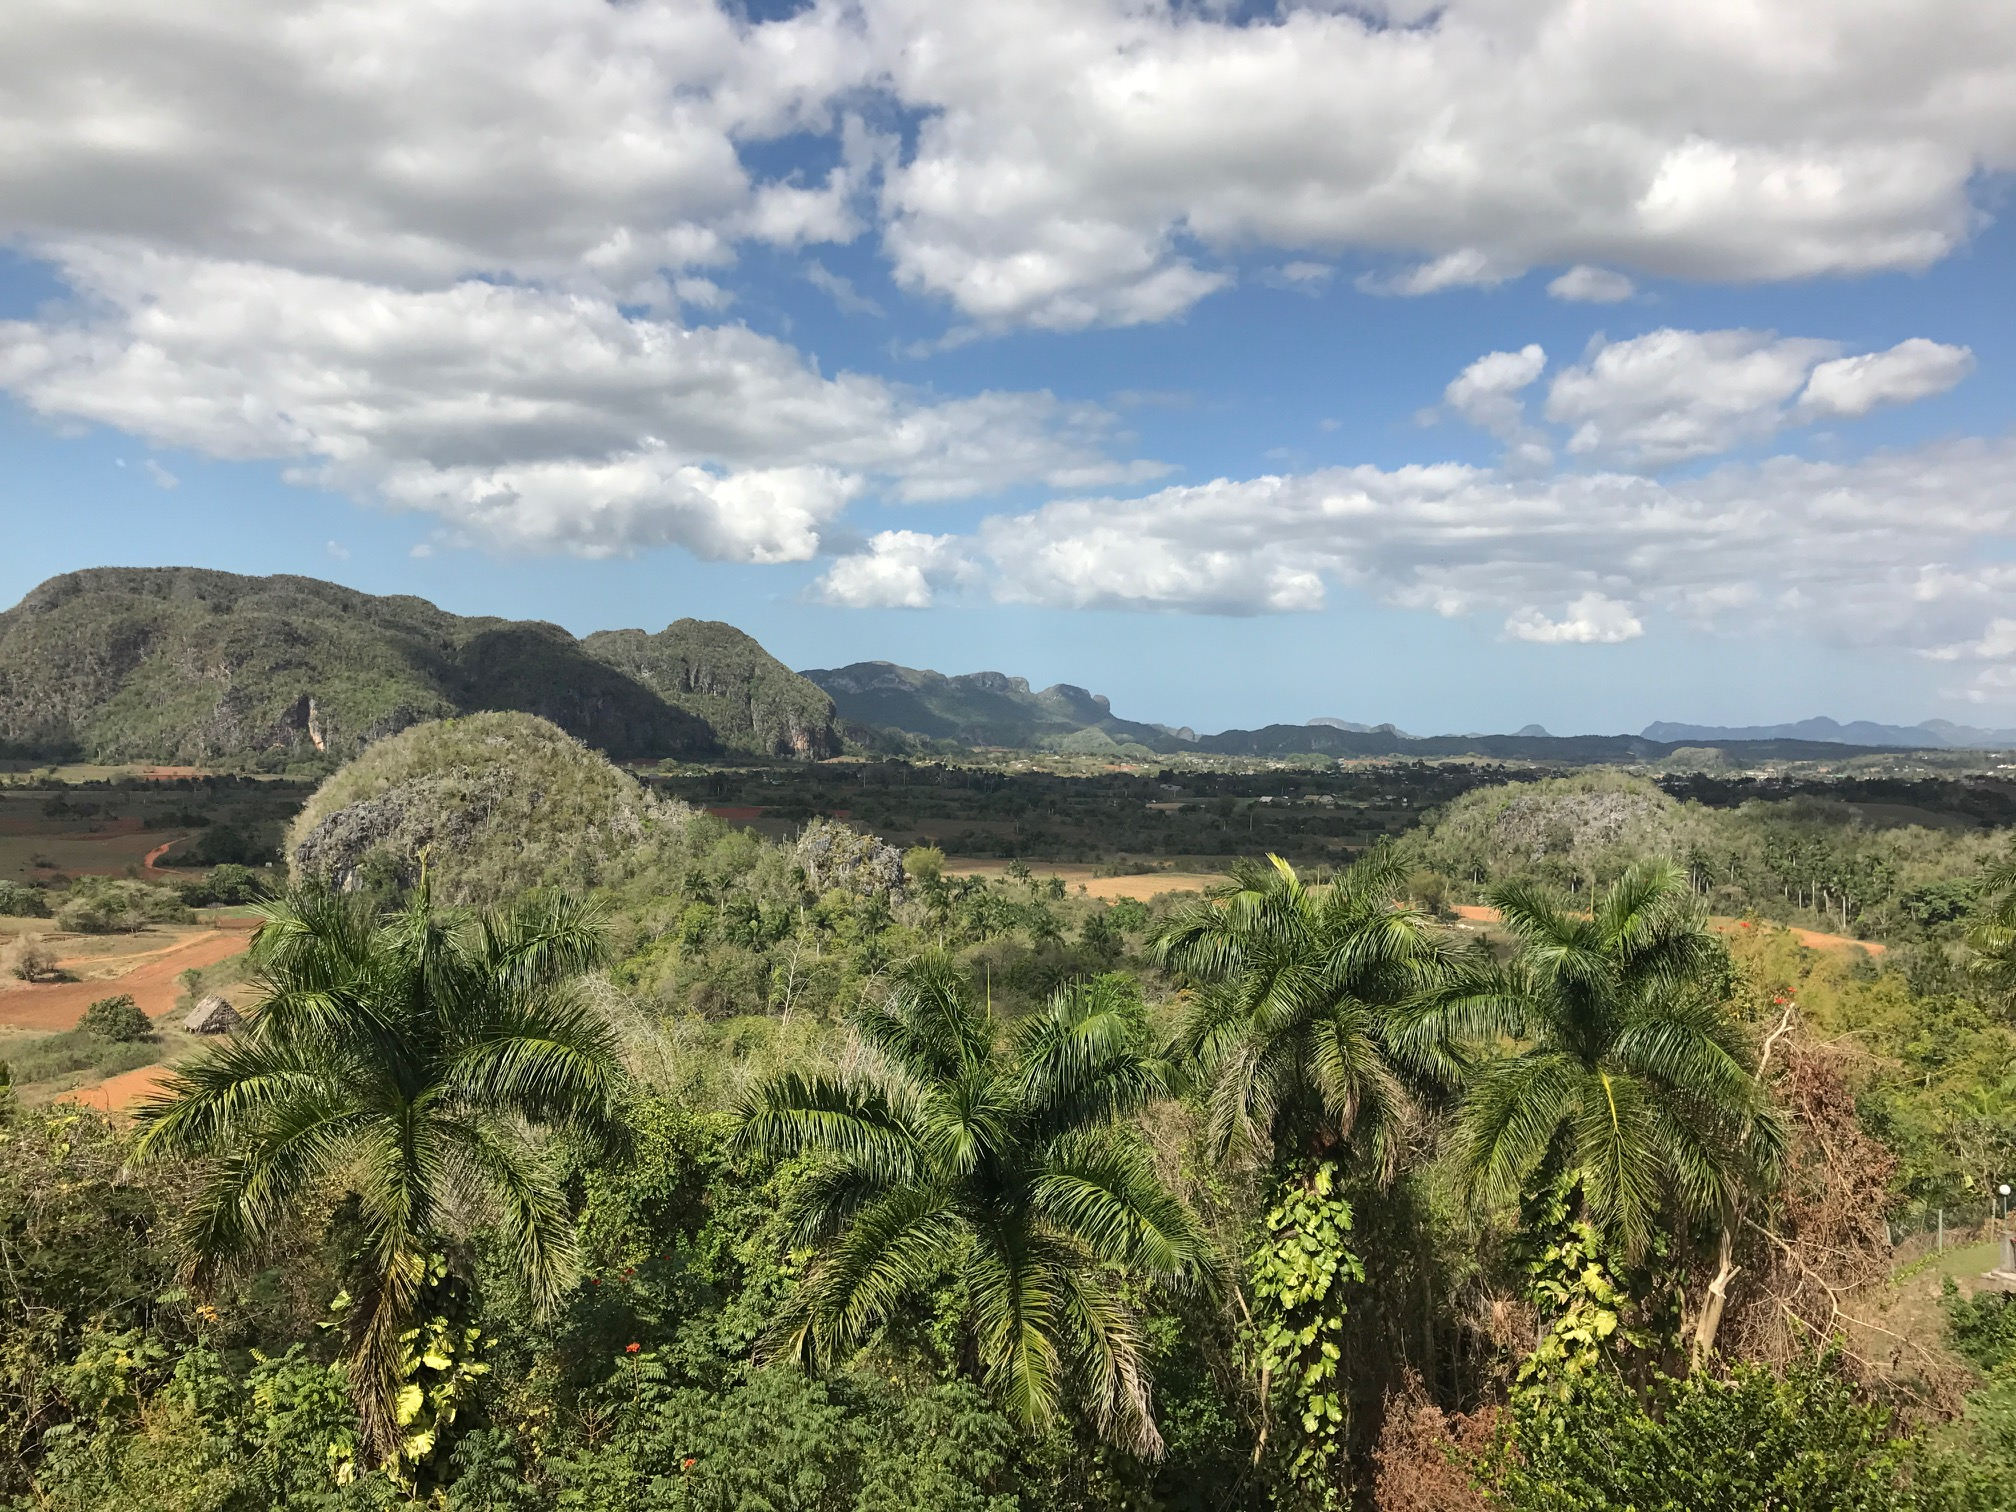 A day tour through the countryside village of Vinales